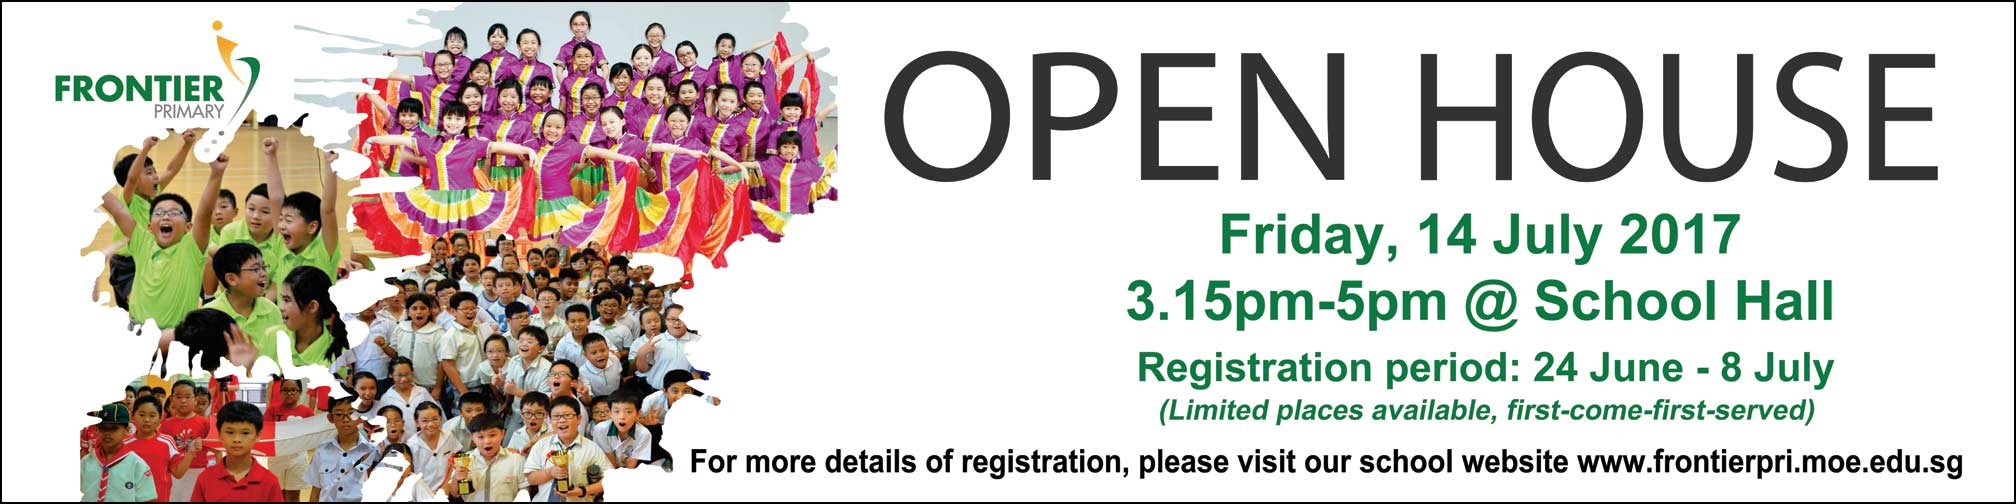 registration for frontier primary school open house 2017 tickets